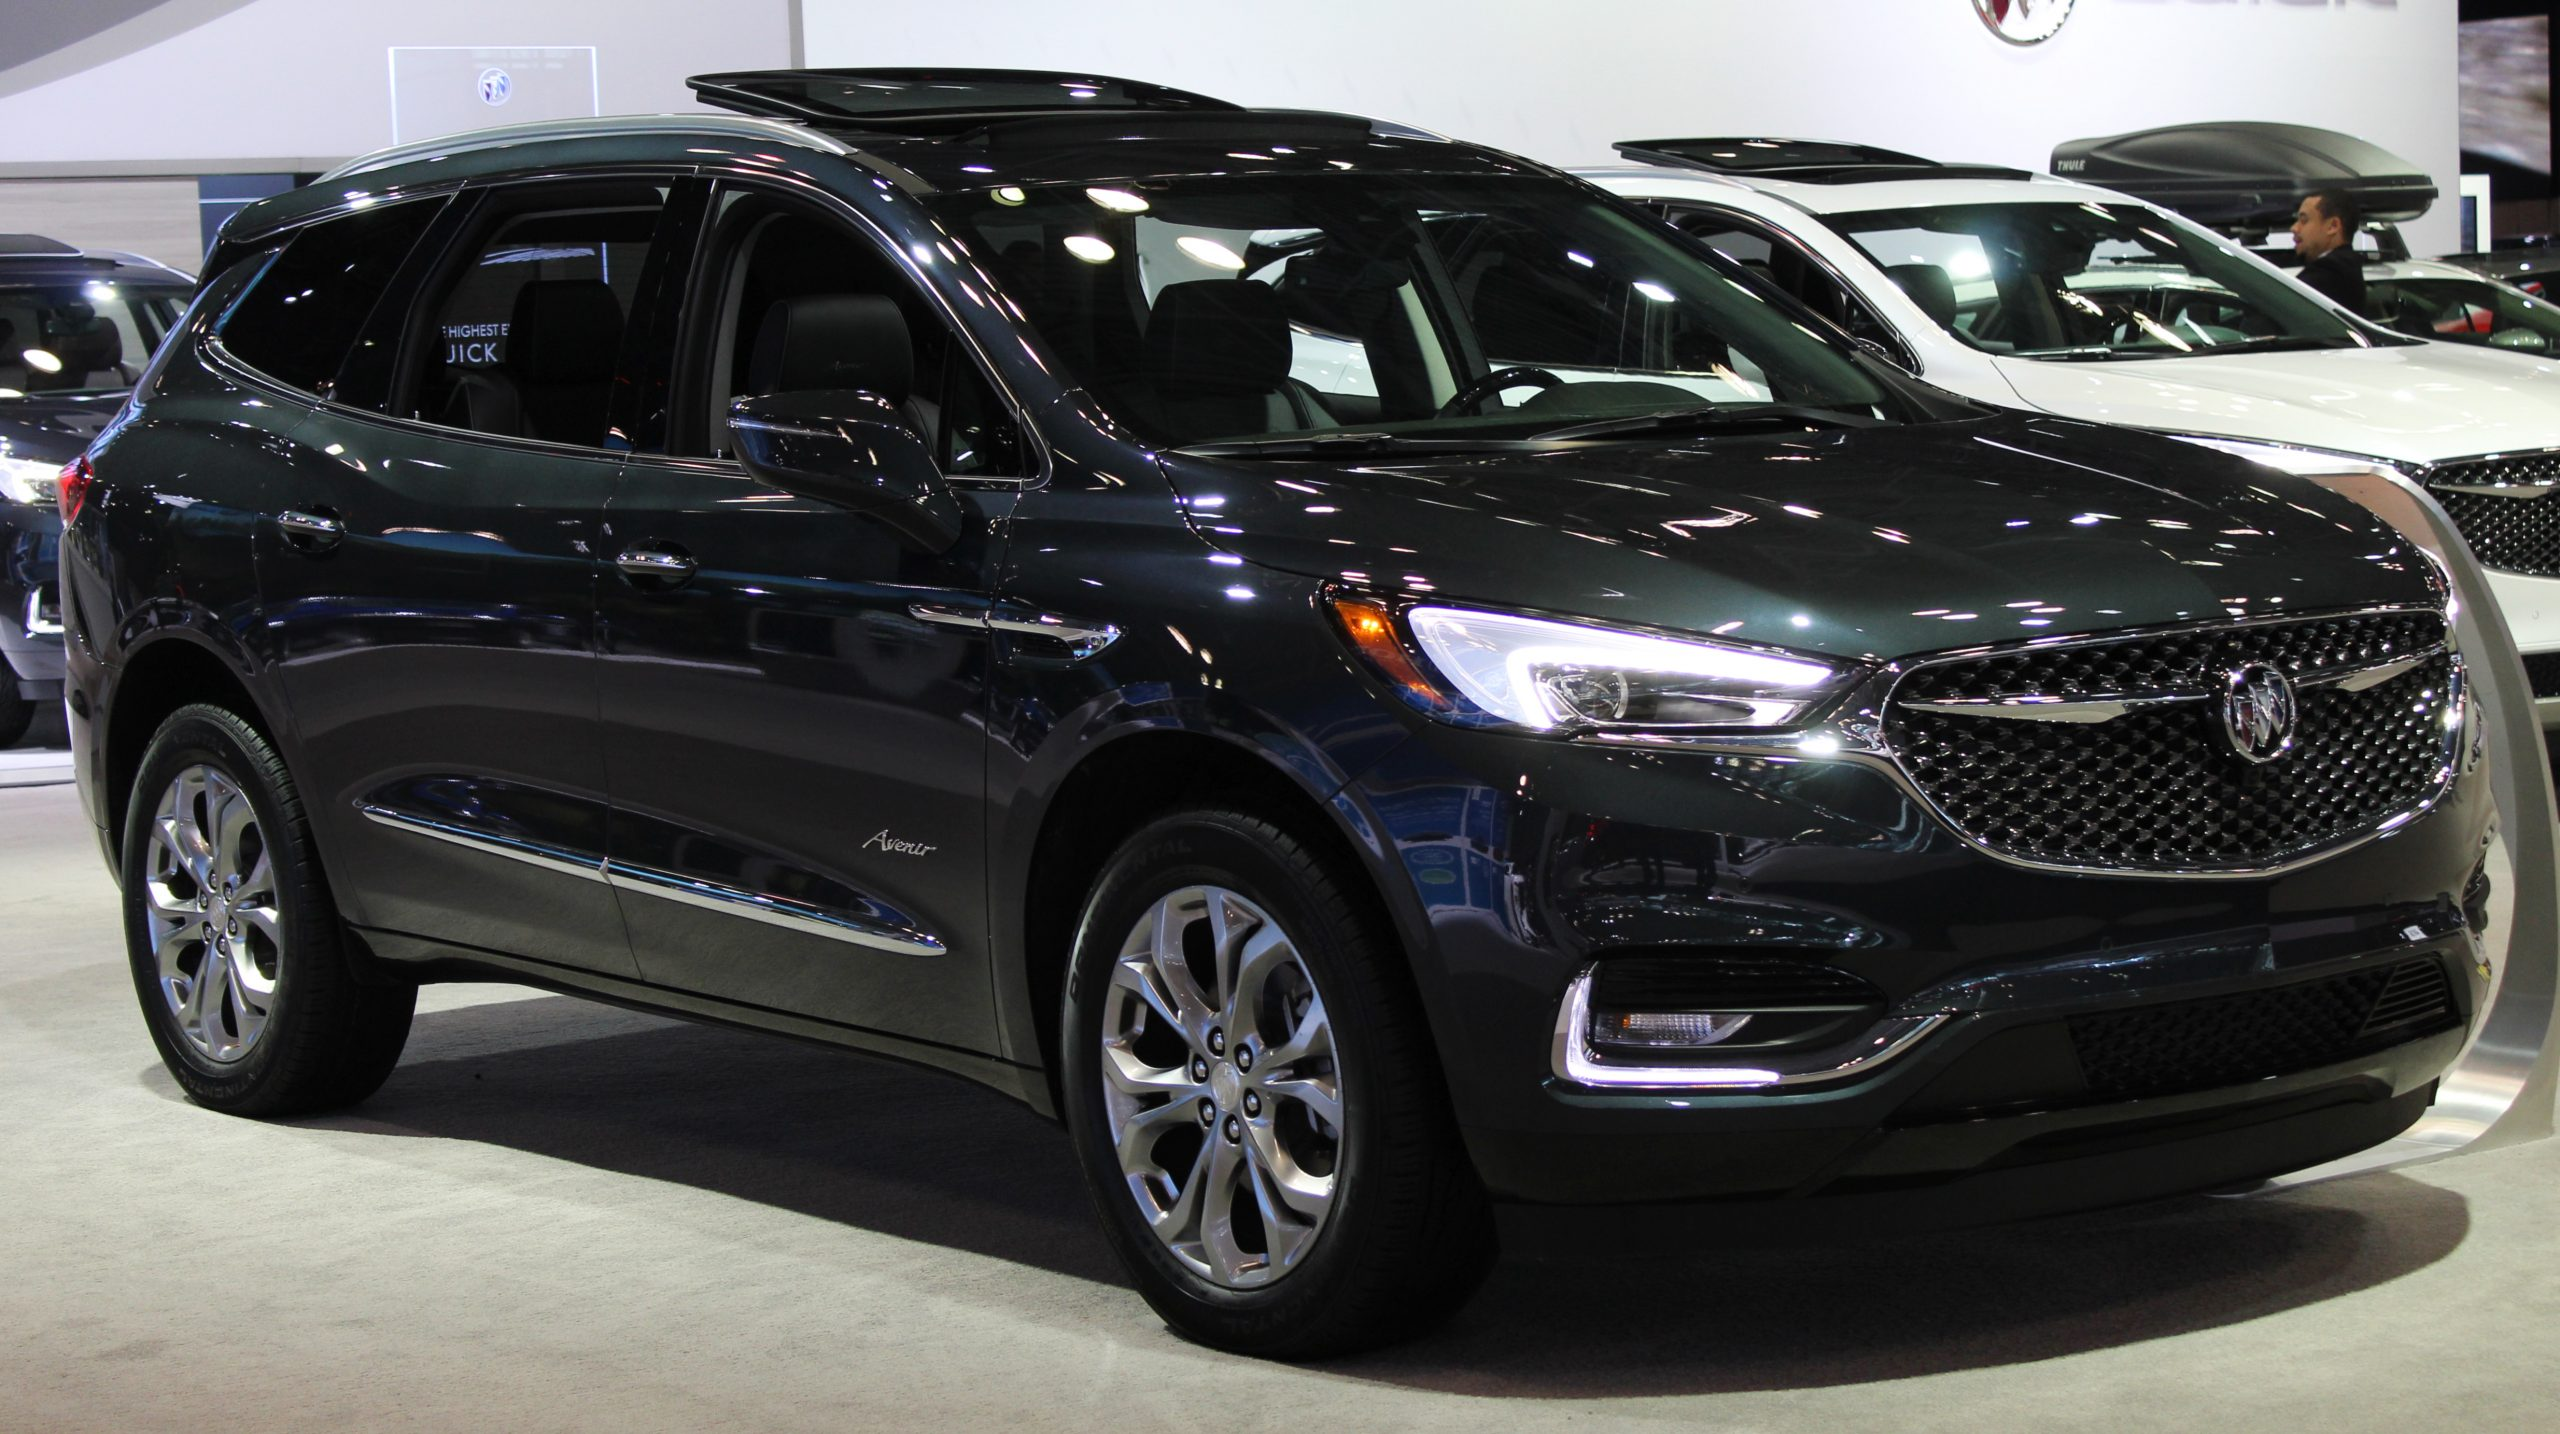 Buick Enclave - Wikipedia New 2022 Buick Enclave Ground Clearance, Gas Type, Horsepower